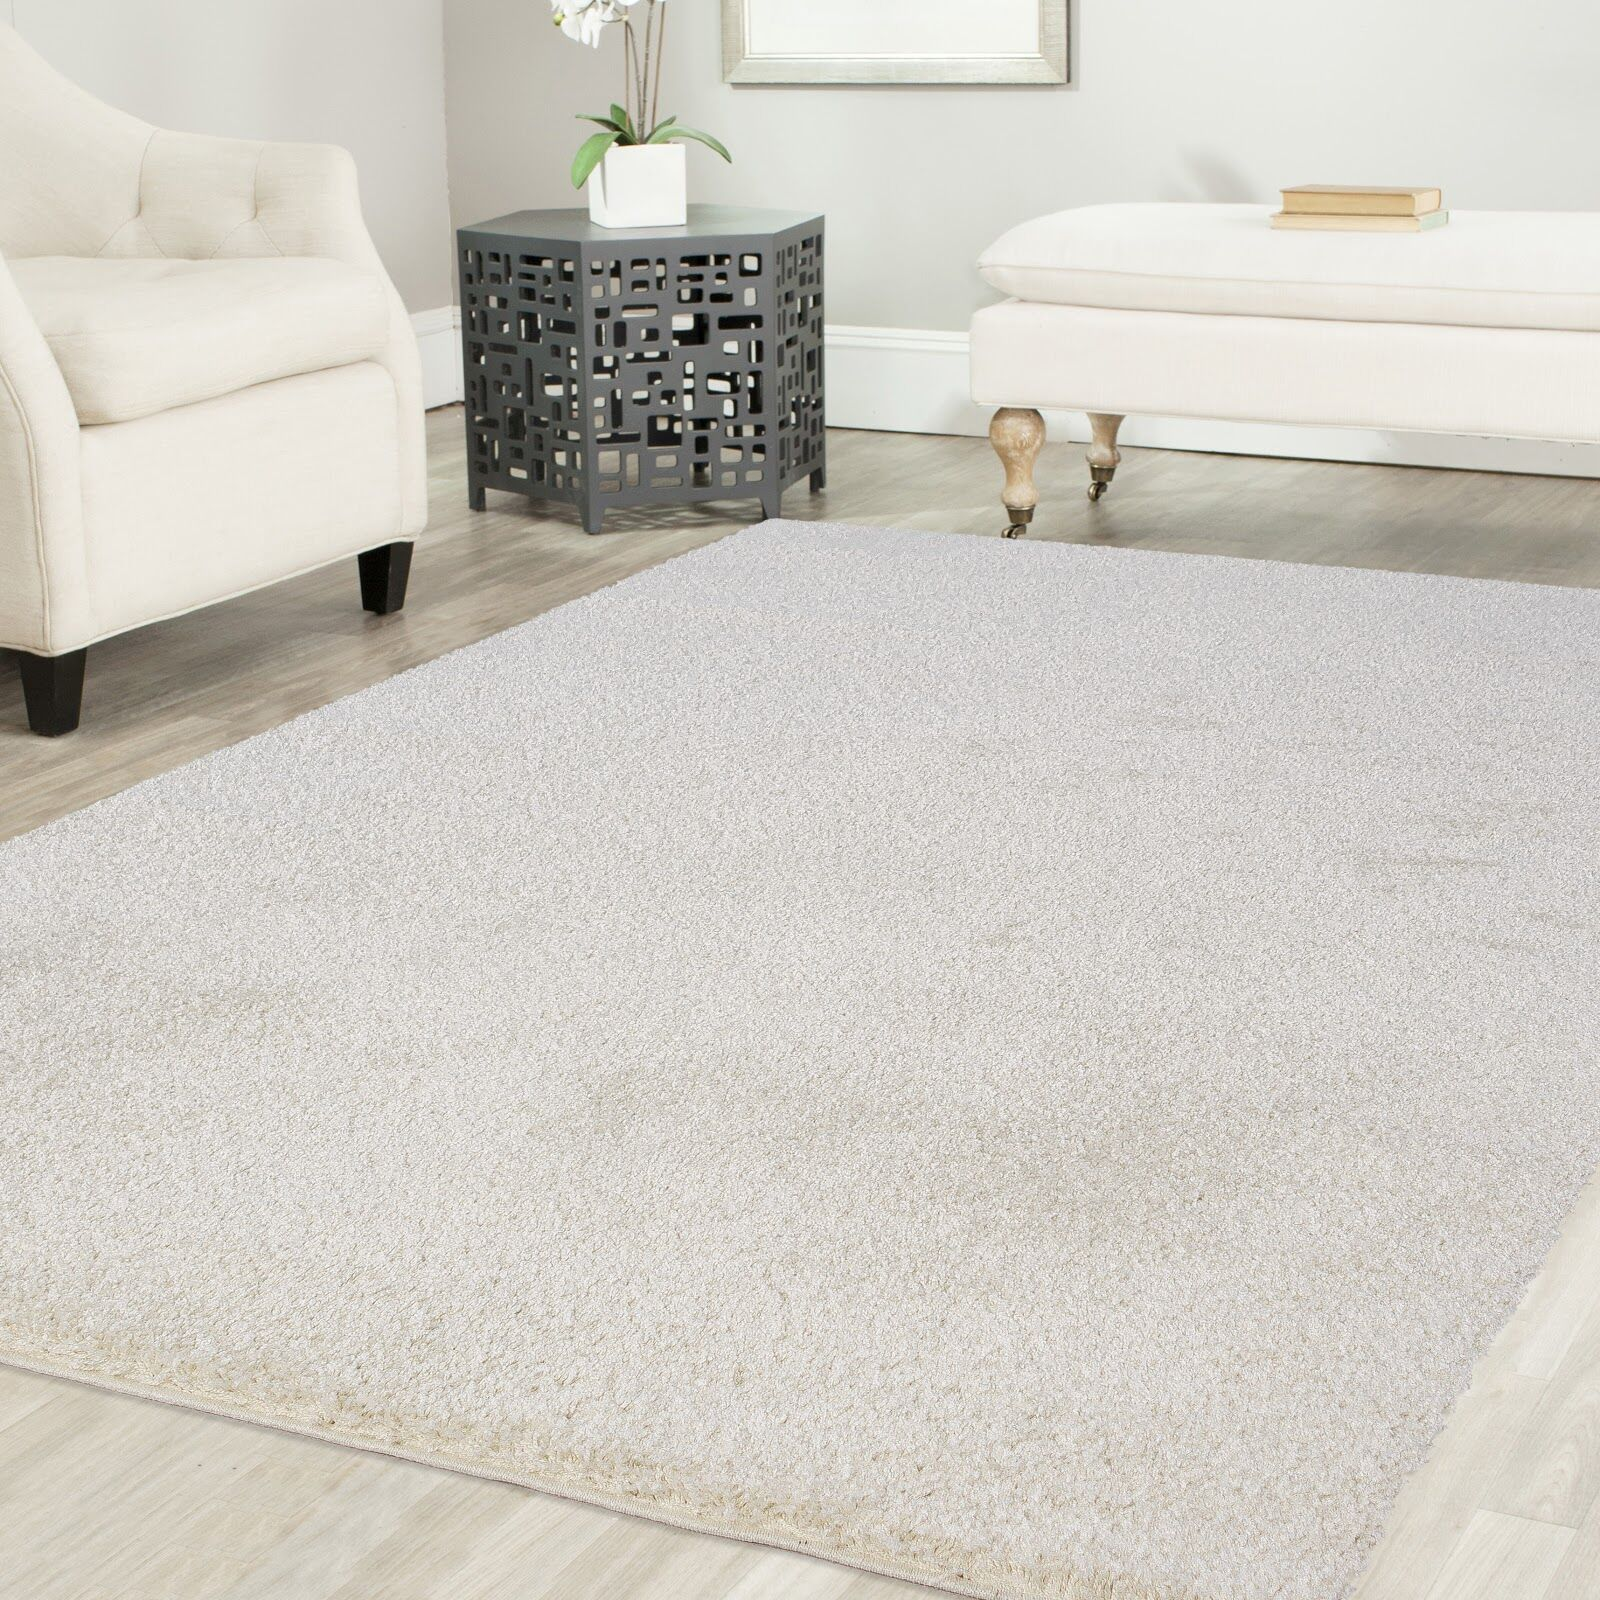 Gassin Shag White Area Rug Rug Size: Rectangle 2' x 8'